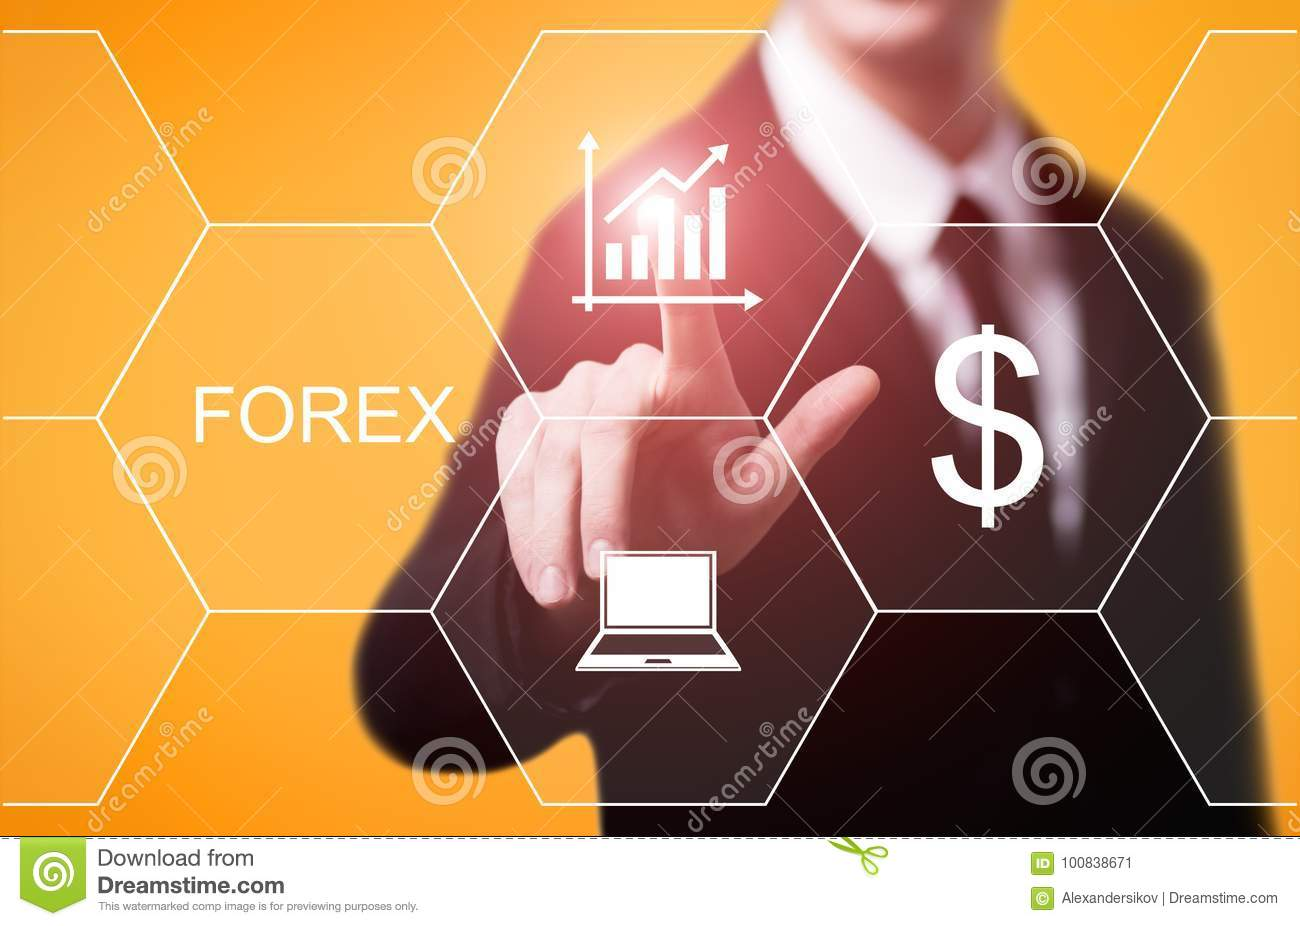 Investment forex trading